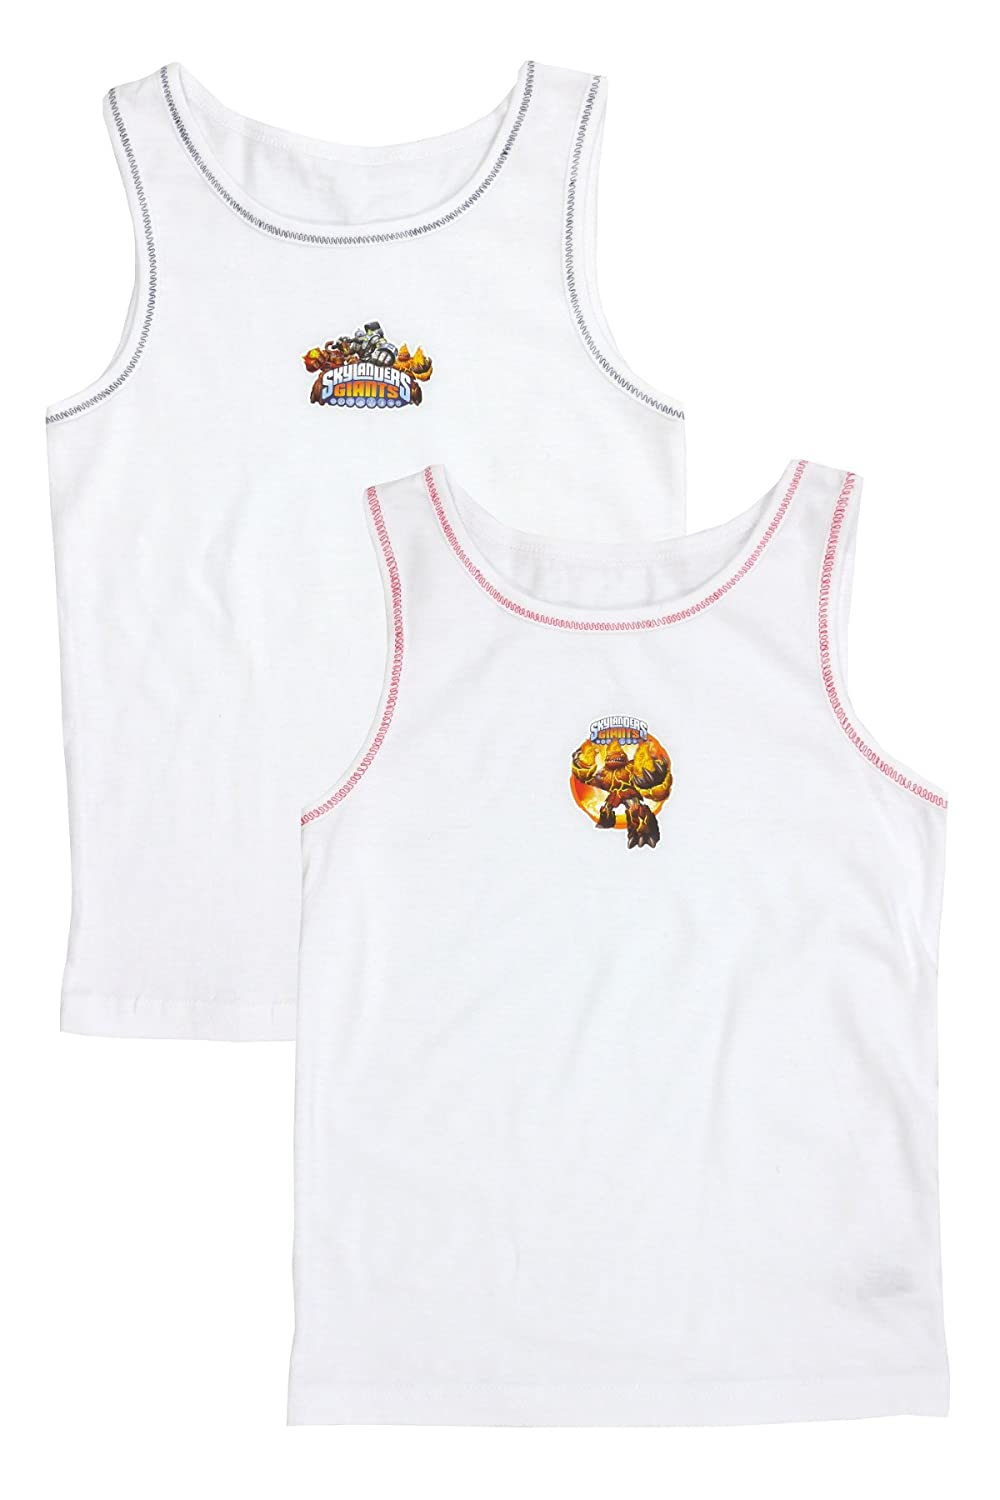 Cartoon Character Products Pack of 2 Skylander Giants Cotton Vests